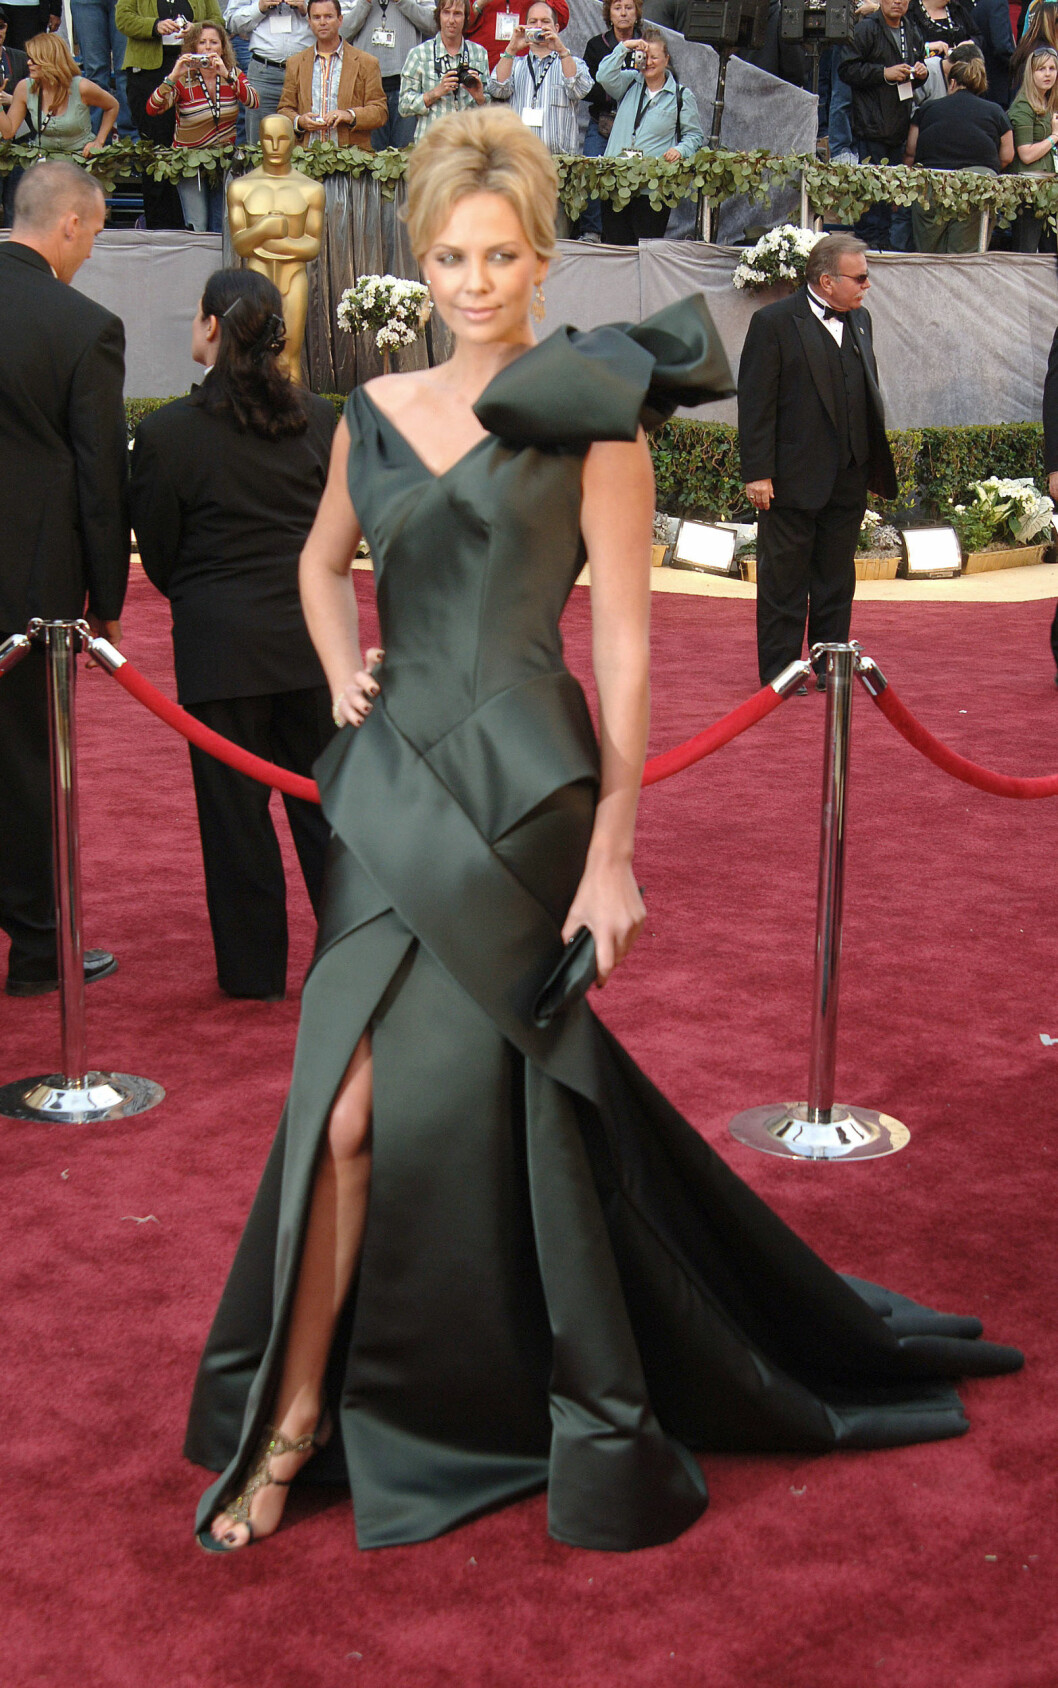 78th Annual Academy Awards held at the Kodak Theater, Hollywood, CA.  on March 5, 2006  Pictured: Charlize Theron Ref: SPL930243  170115   Picture by: Photo Image Press / Splash News  Splash News and Pictures Los Angeles:	310-821-2666 New York:	212-619-2666 London:	870-934-2666 photodesk@splashnews.com  Foto: Photo Image Press / Splash News/ All Over Press